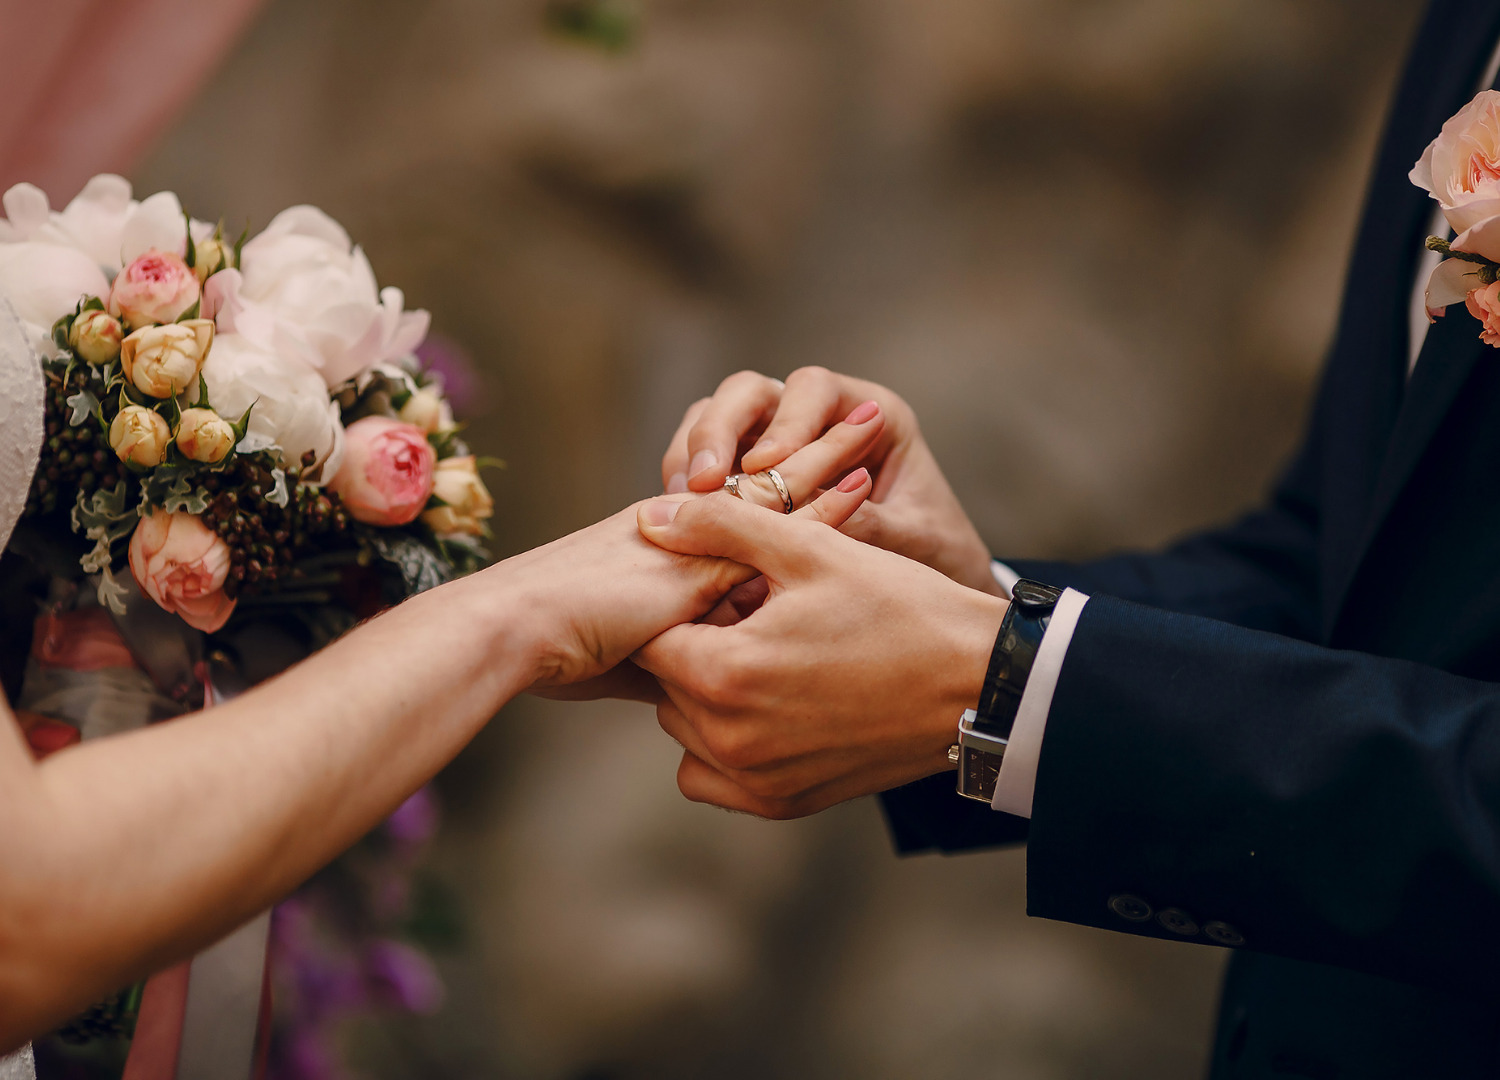 How symbolism and traditional customs are used in modern weddings